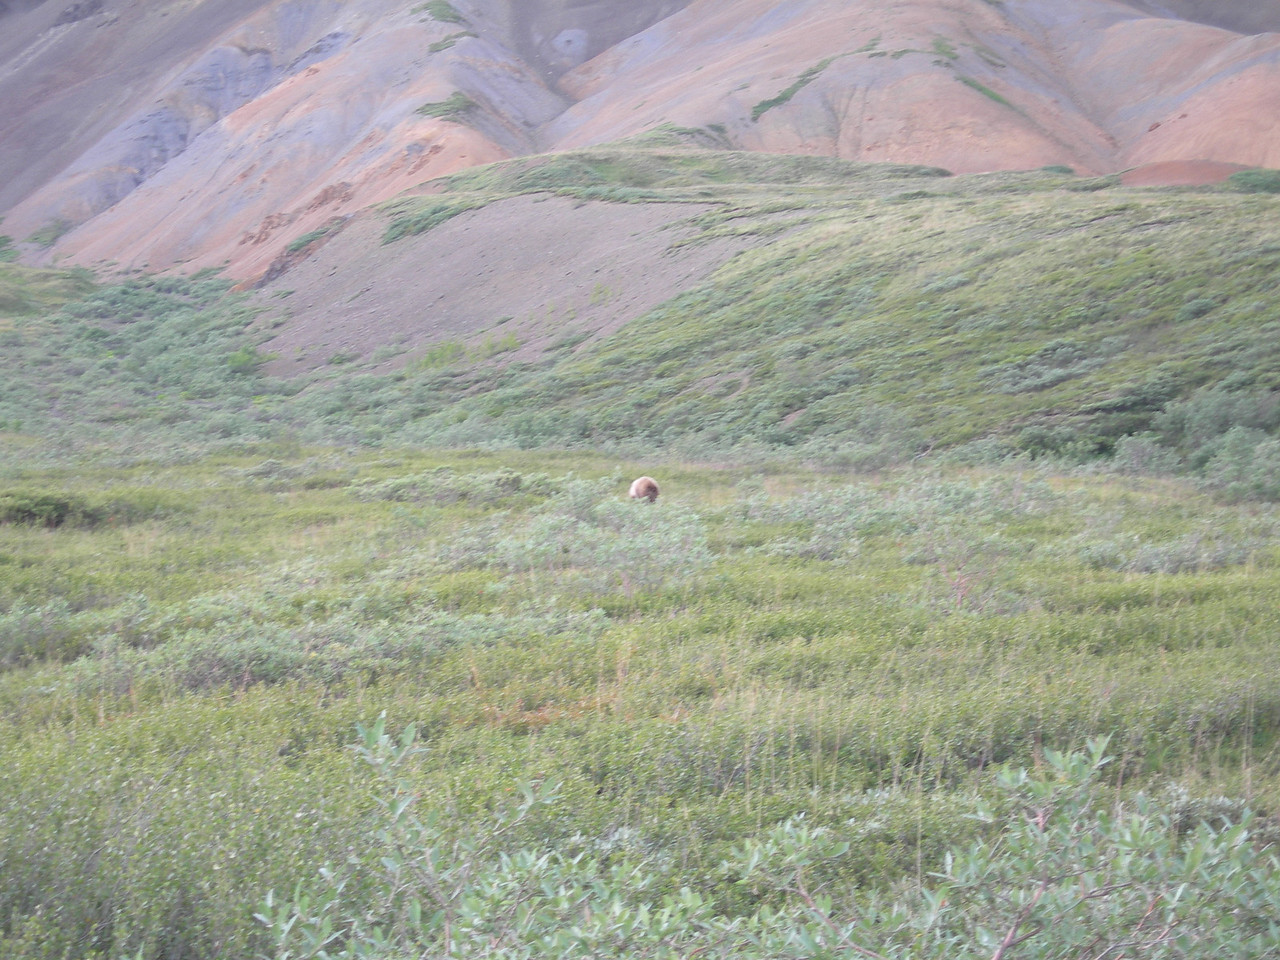 As well as these bears, we also saw many caribou, a few moose and a distant glimpse of Denali's only wolf pack, with cubs. We were very lucky.